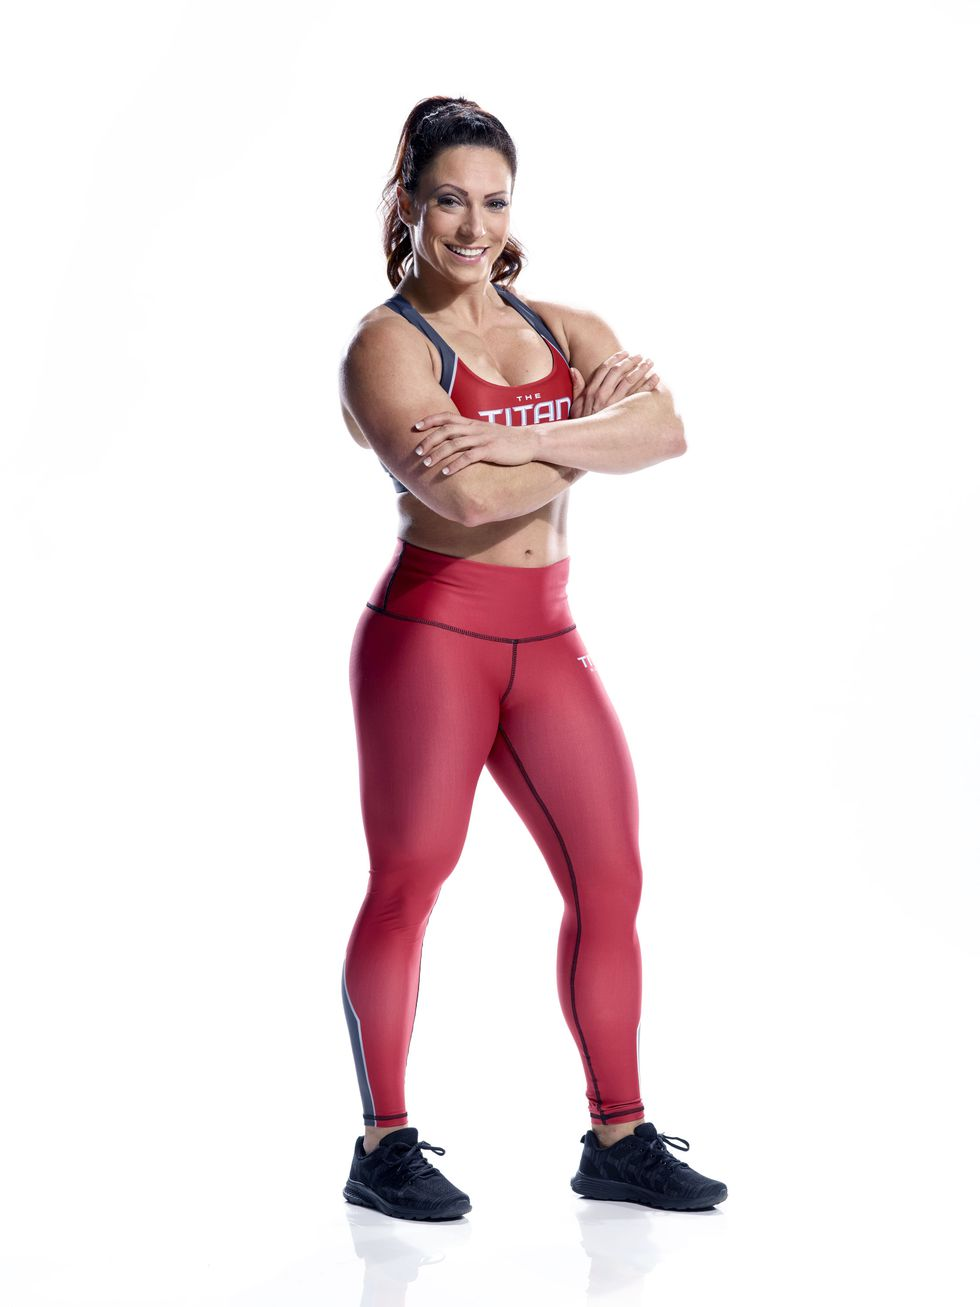 Jenessa Goeman - Instagram: @gym_nessaTwitter: @gym_nessaA former top gymnast on a national championship team, Jenessa has a love for fitness. At 28, a ligament tear forced her to find an alternate mode of exercise and, at the suggestion of her then boyfriend, took up weight-lifting. Jenessa wants to prove both to herself and the world she is a strong, independent woman.